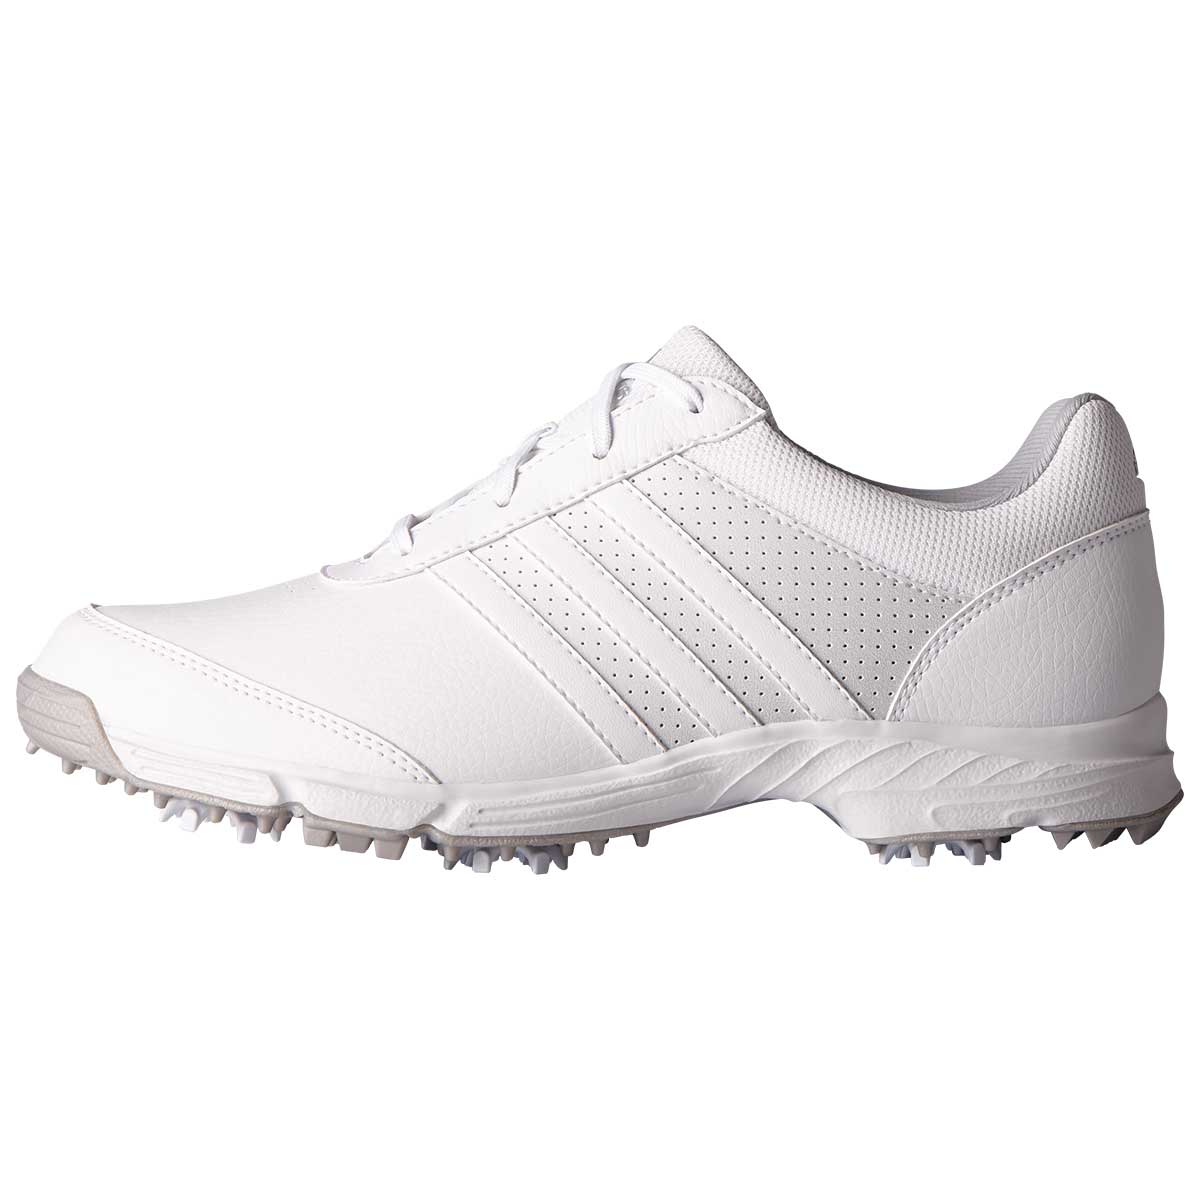 adidas Women's Tech Response Golf Shoe - White/Silver